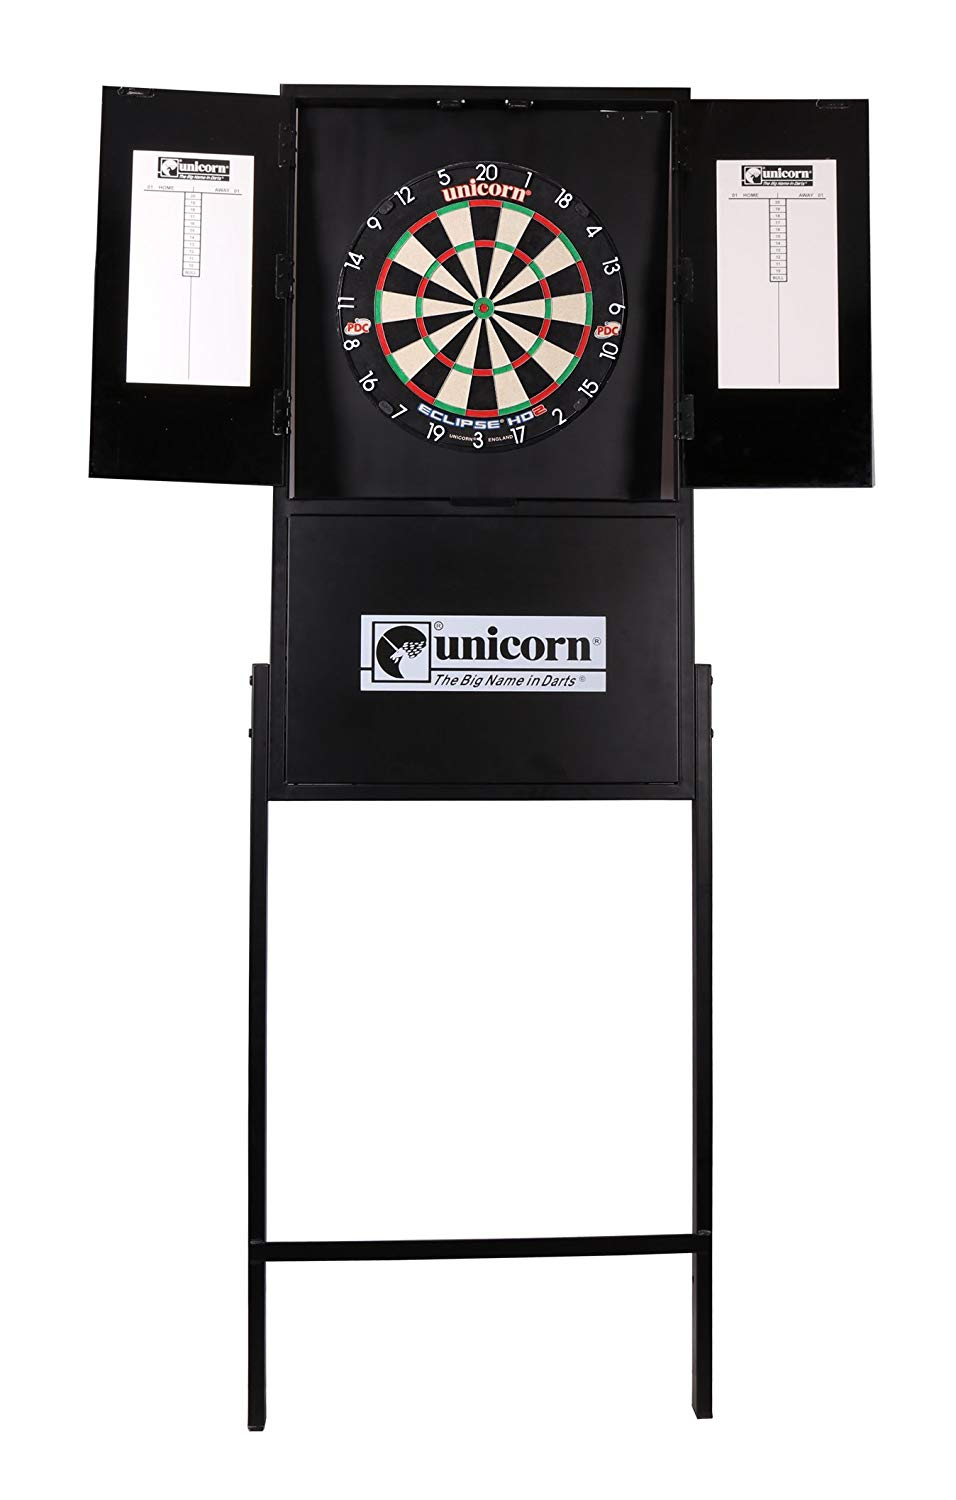 Lot 10 - Unicorn X-Tip Dartboard Stand RRP £199.99.